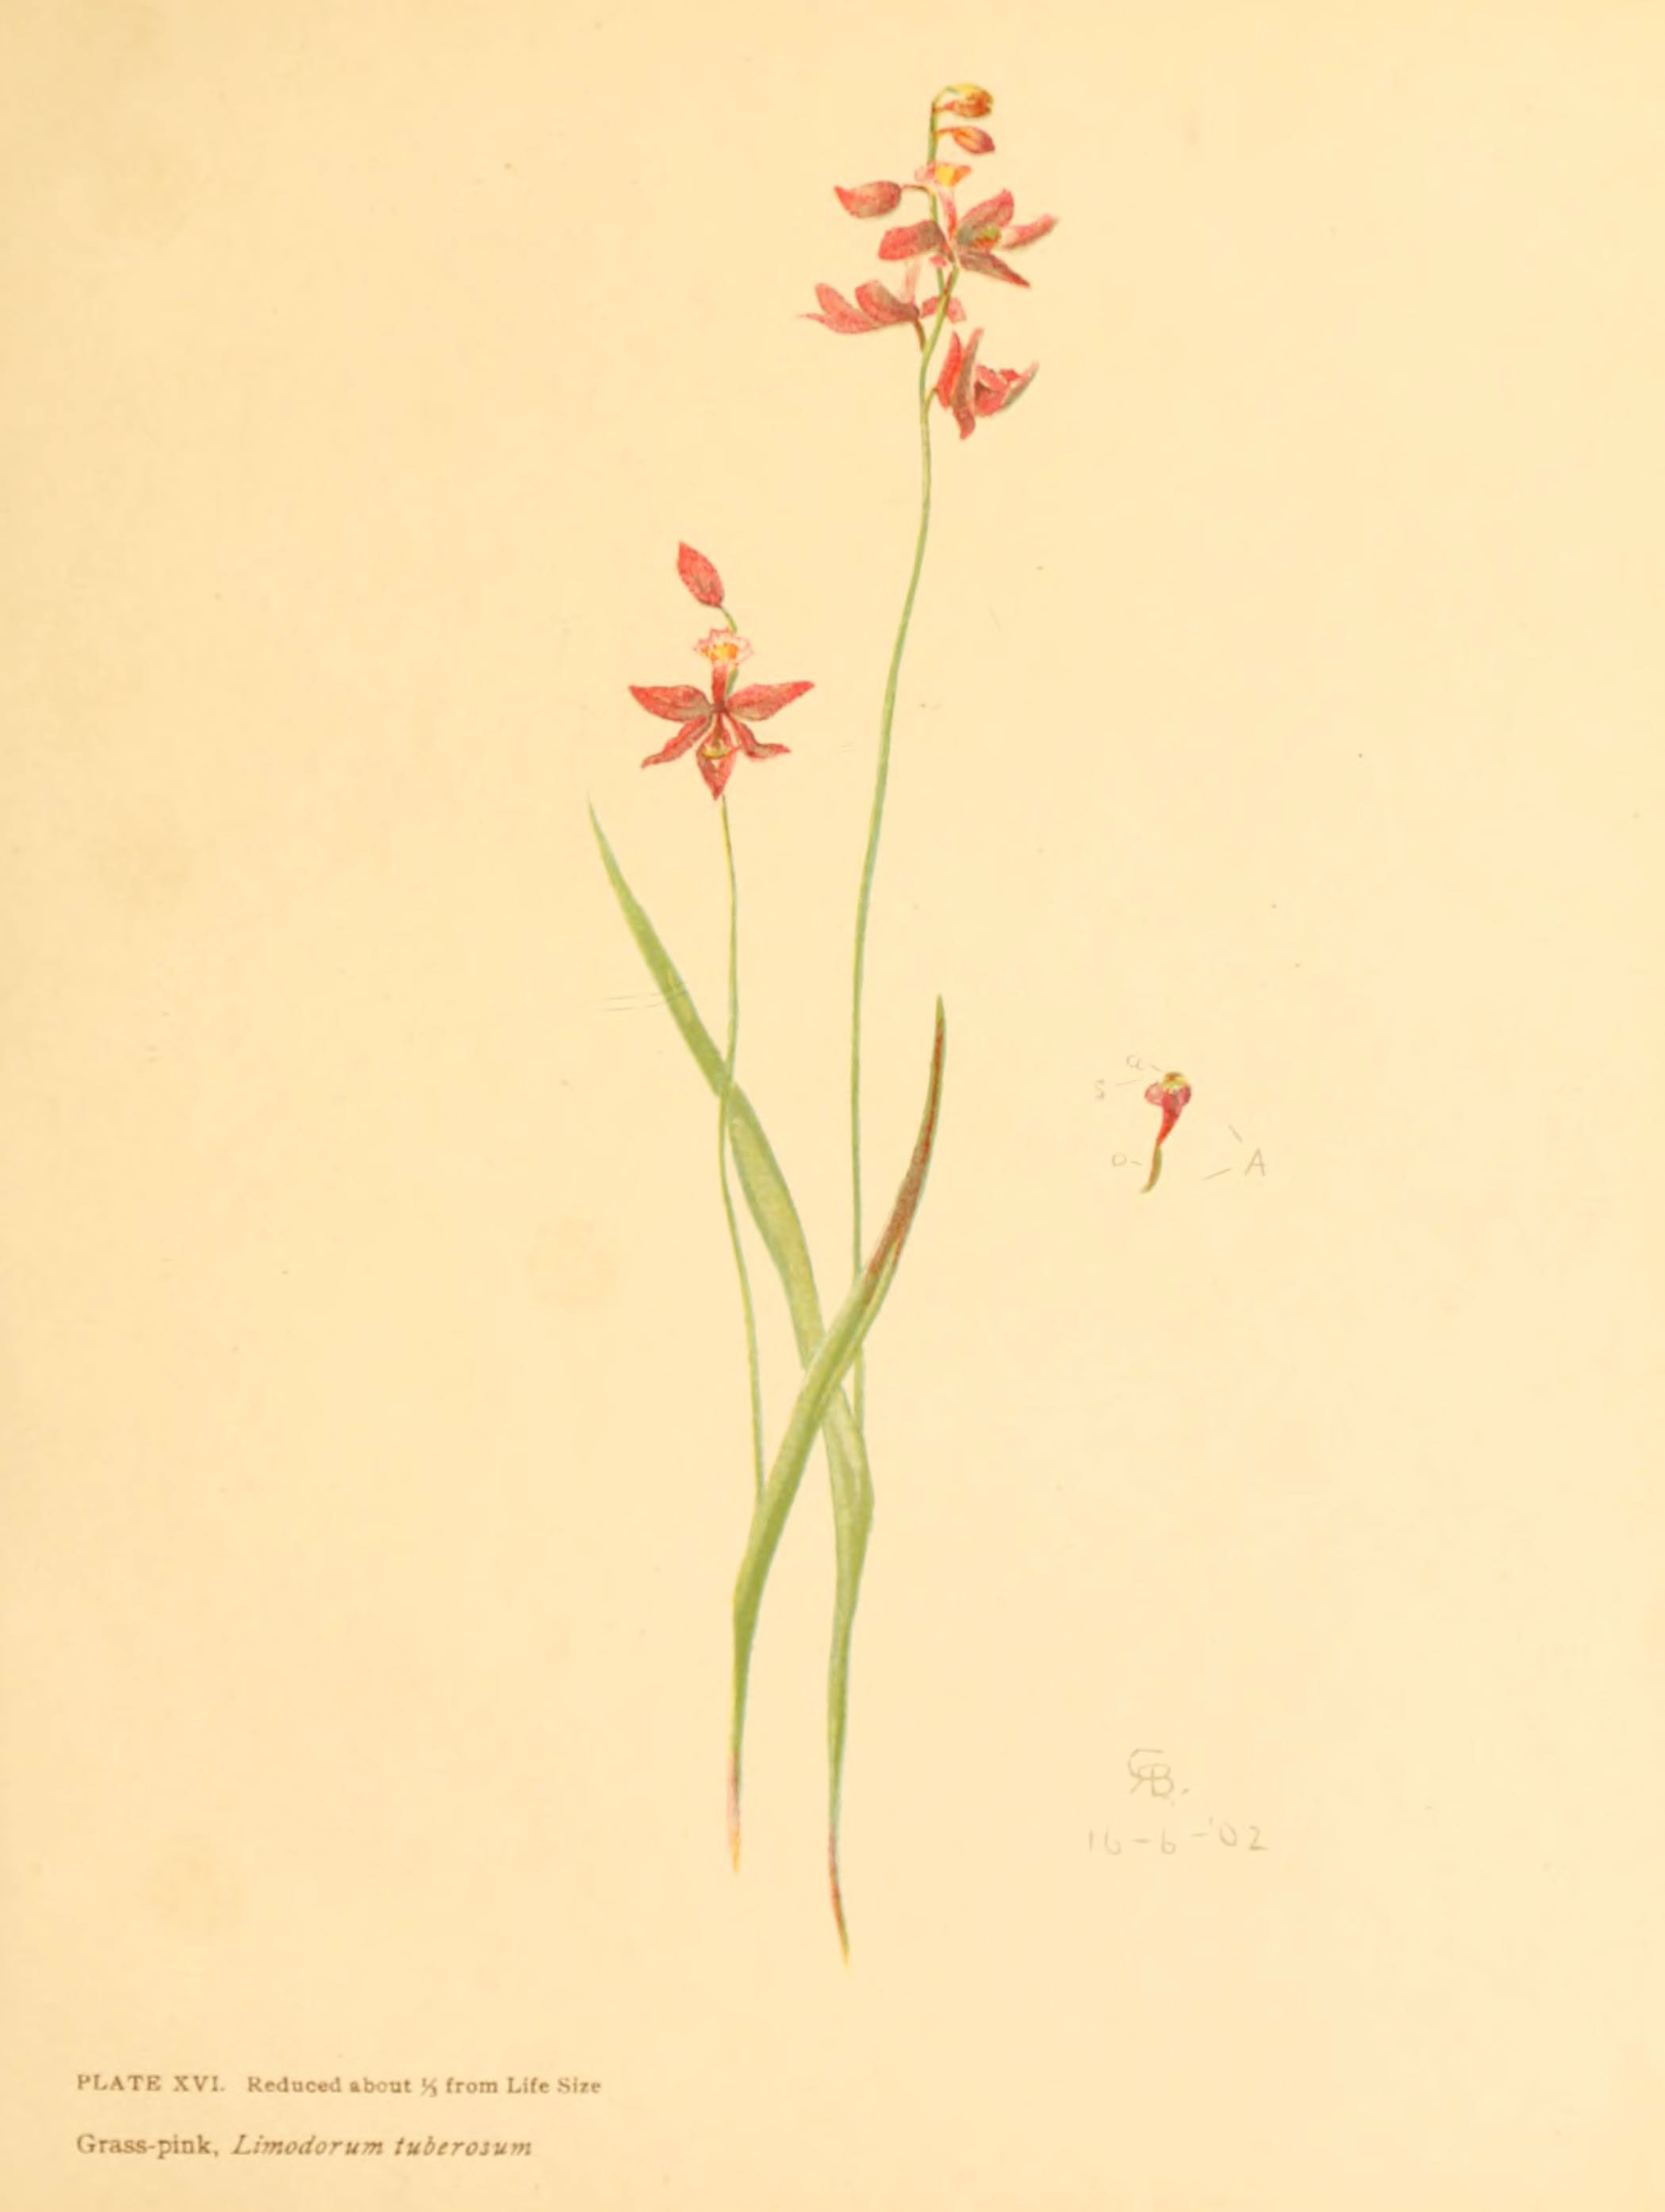 Image of tuberous grasspink